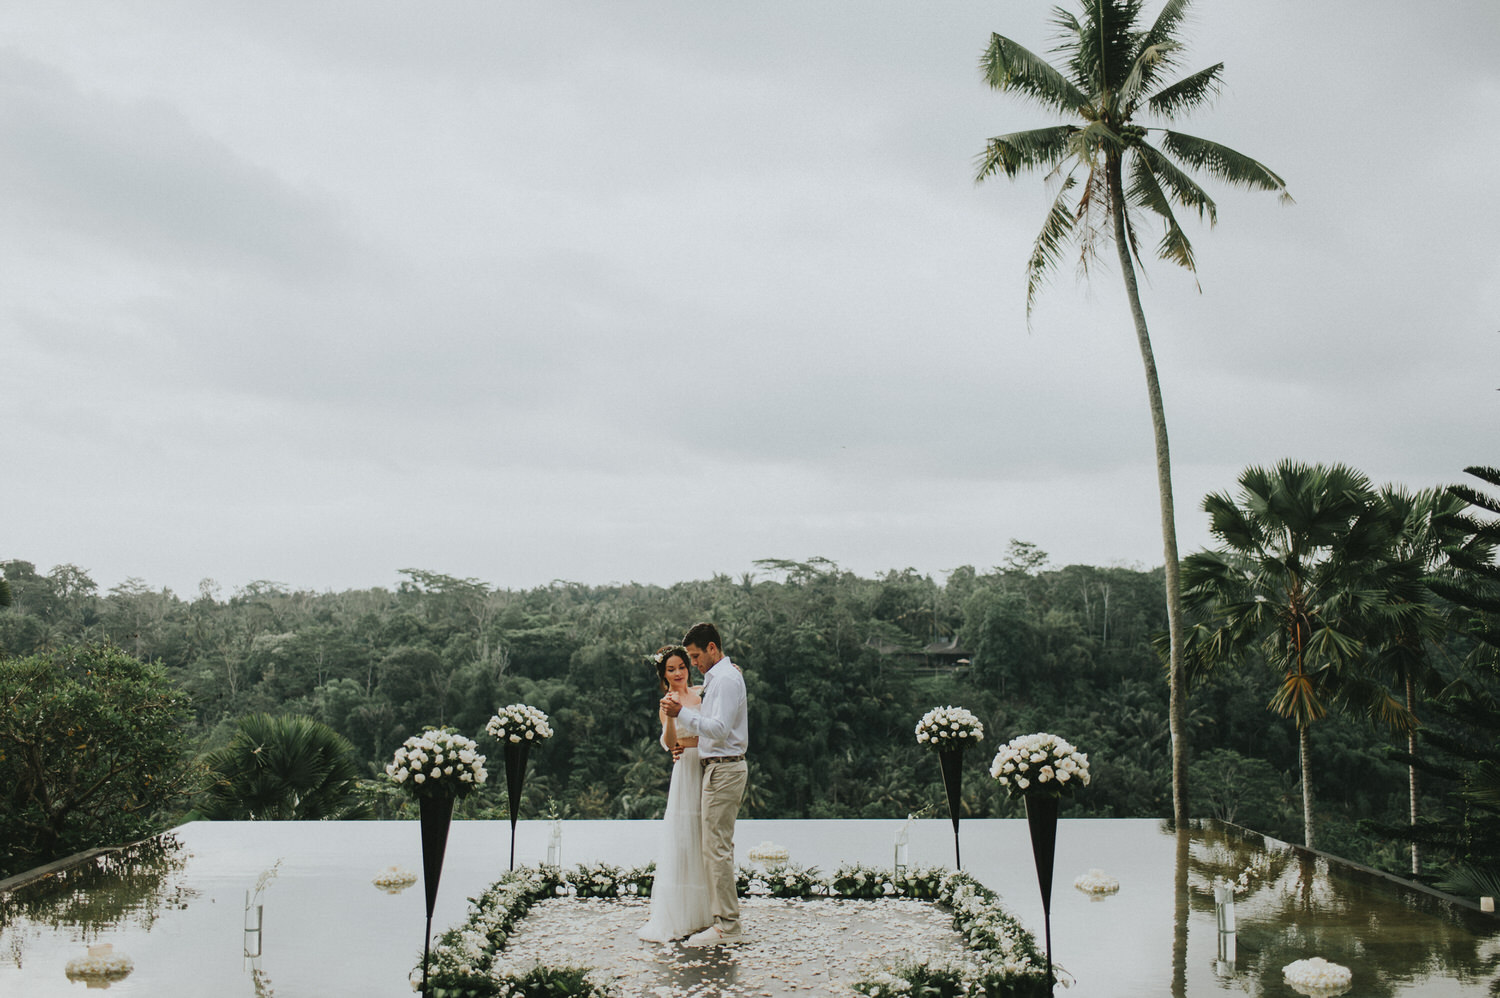 bali wedding - elopement - ubud wedding - diktatphotography - olga + Jason - 59